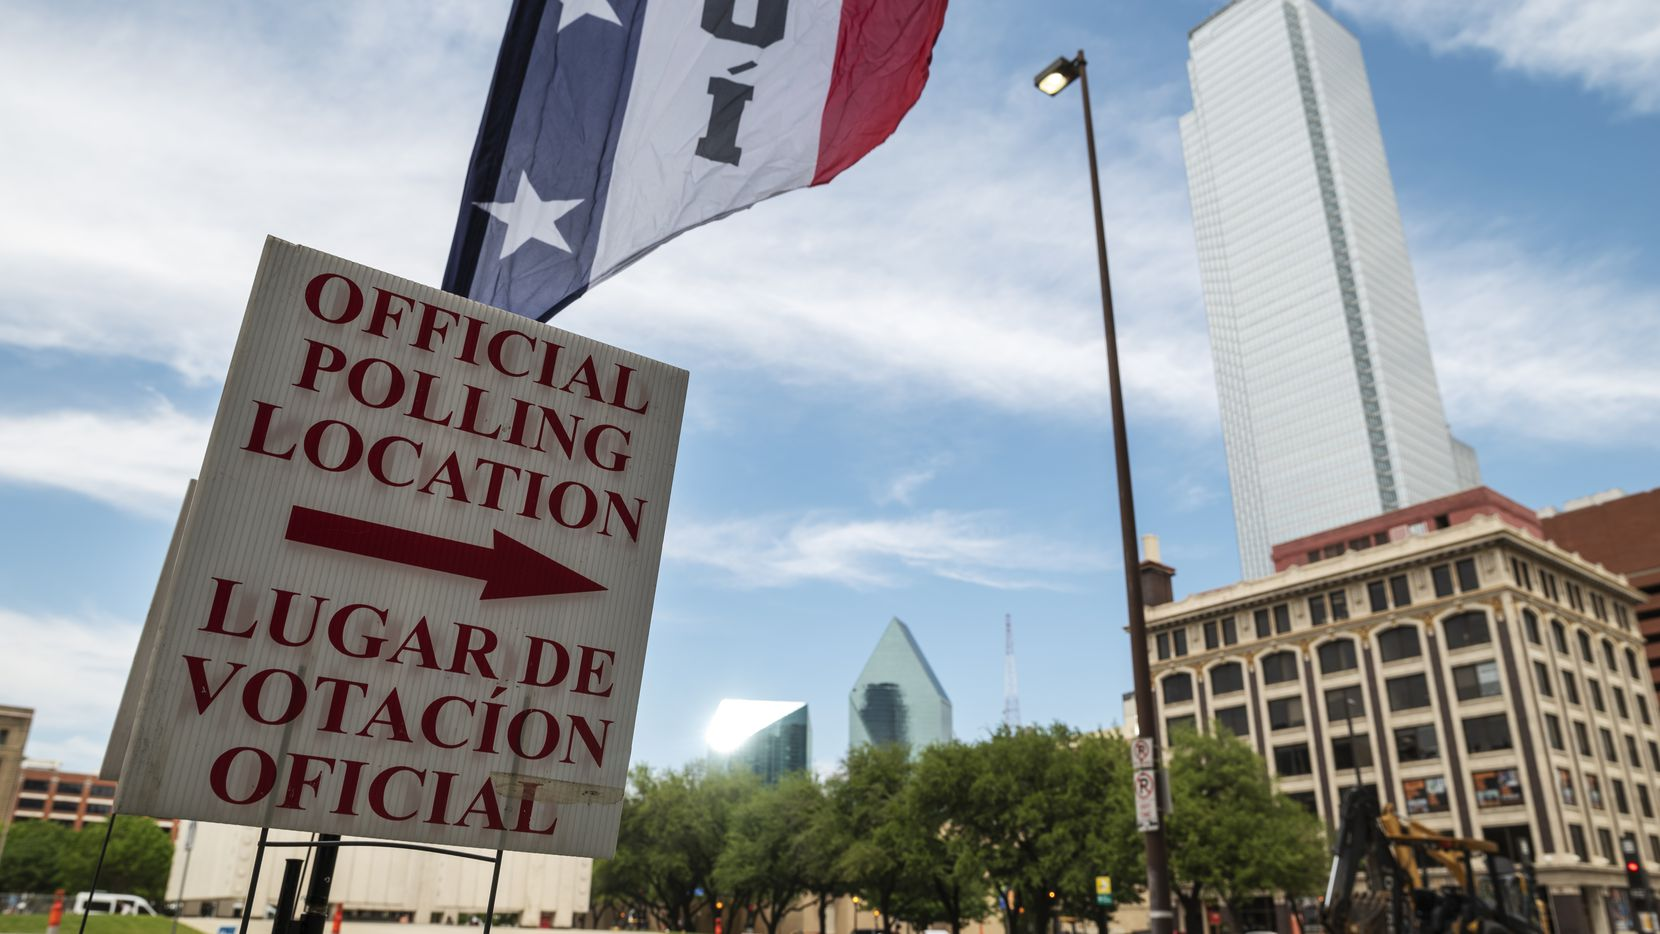 Signage marking an official polling location outside of the  George Allen Courts building in Downtown Dallas, during the first day of early voting, on Monday, April 19, 2021